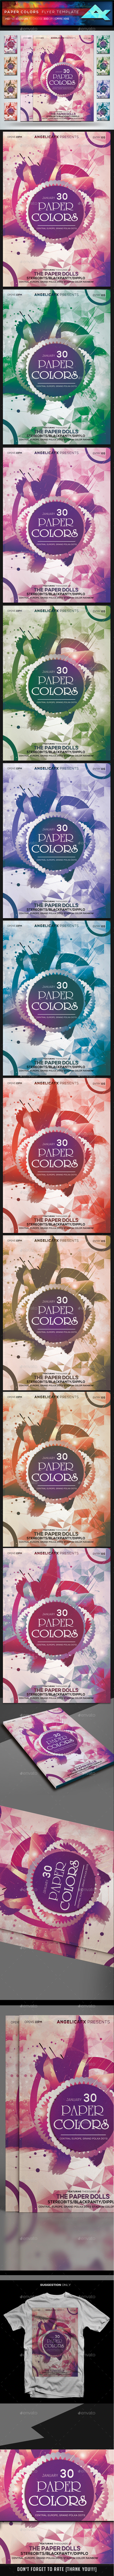 Paper Colors Flyer Template - Clubs & Parties Events